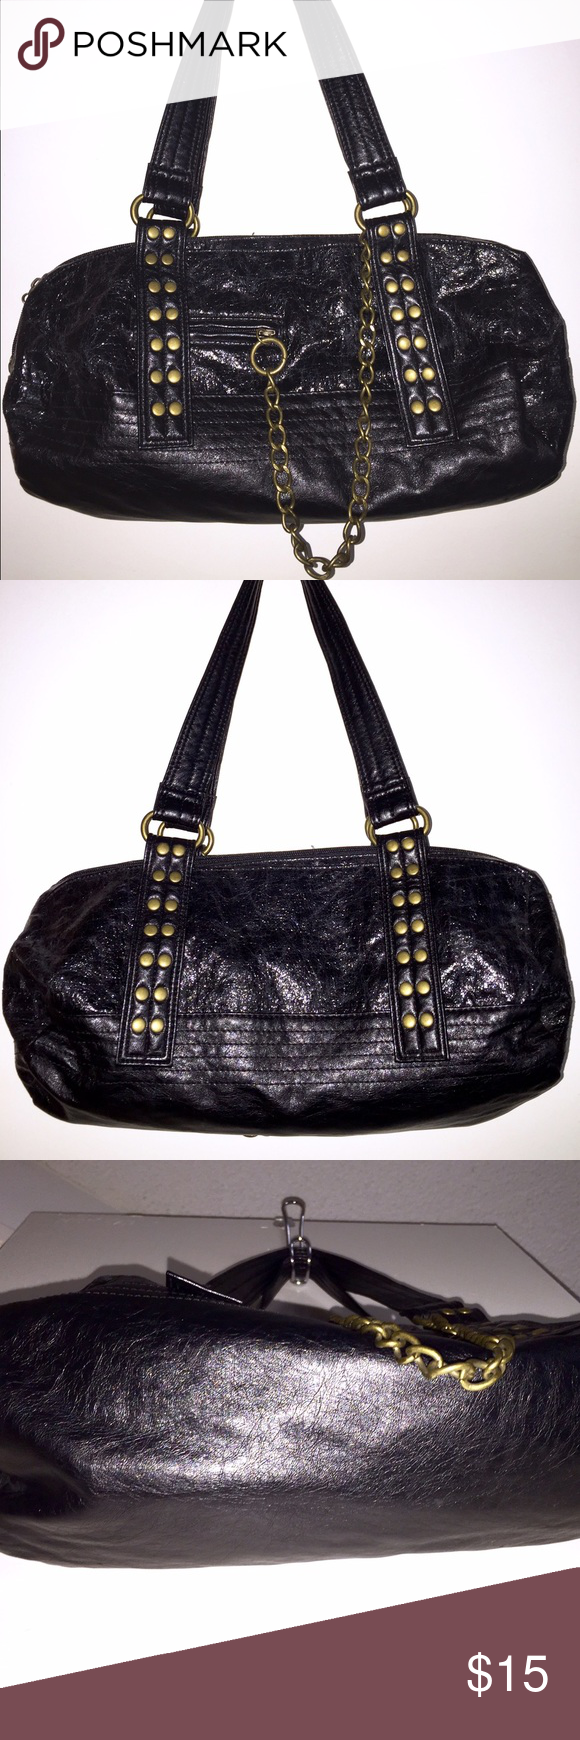 Black Satchel Purse Black Satchel Purse in shiny faux leather with brushed bronze hardware comes in LIKE NEW condition! No rips, tears or staining. Trendy and fashionable at a great price! Bags Satchels